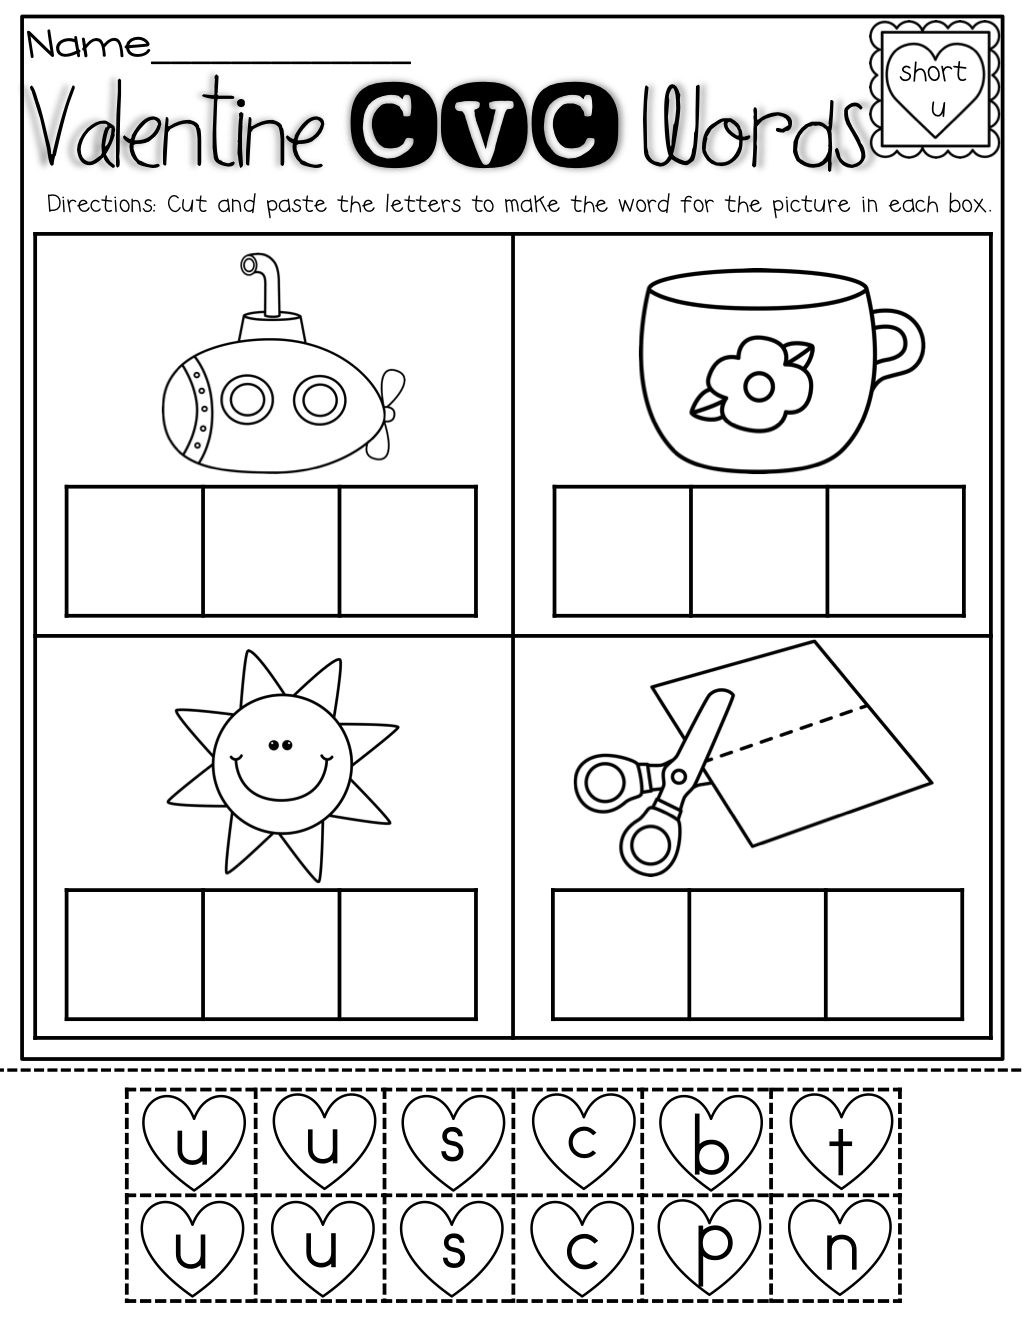 February No Prep Packet (kindergarten) | é�i Lé�v Spitê�